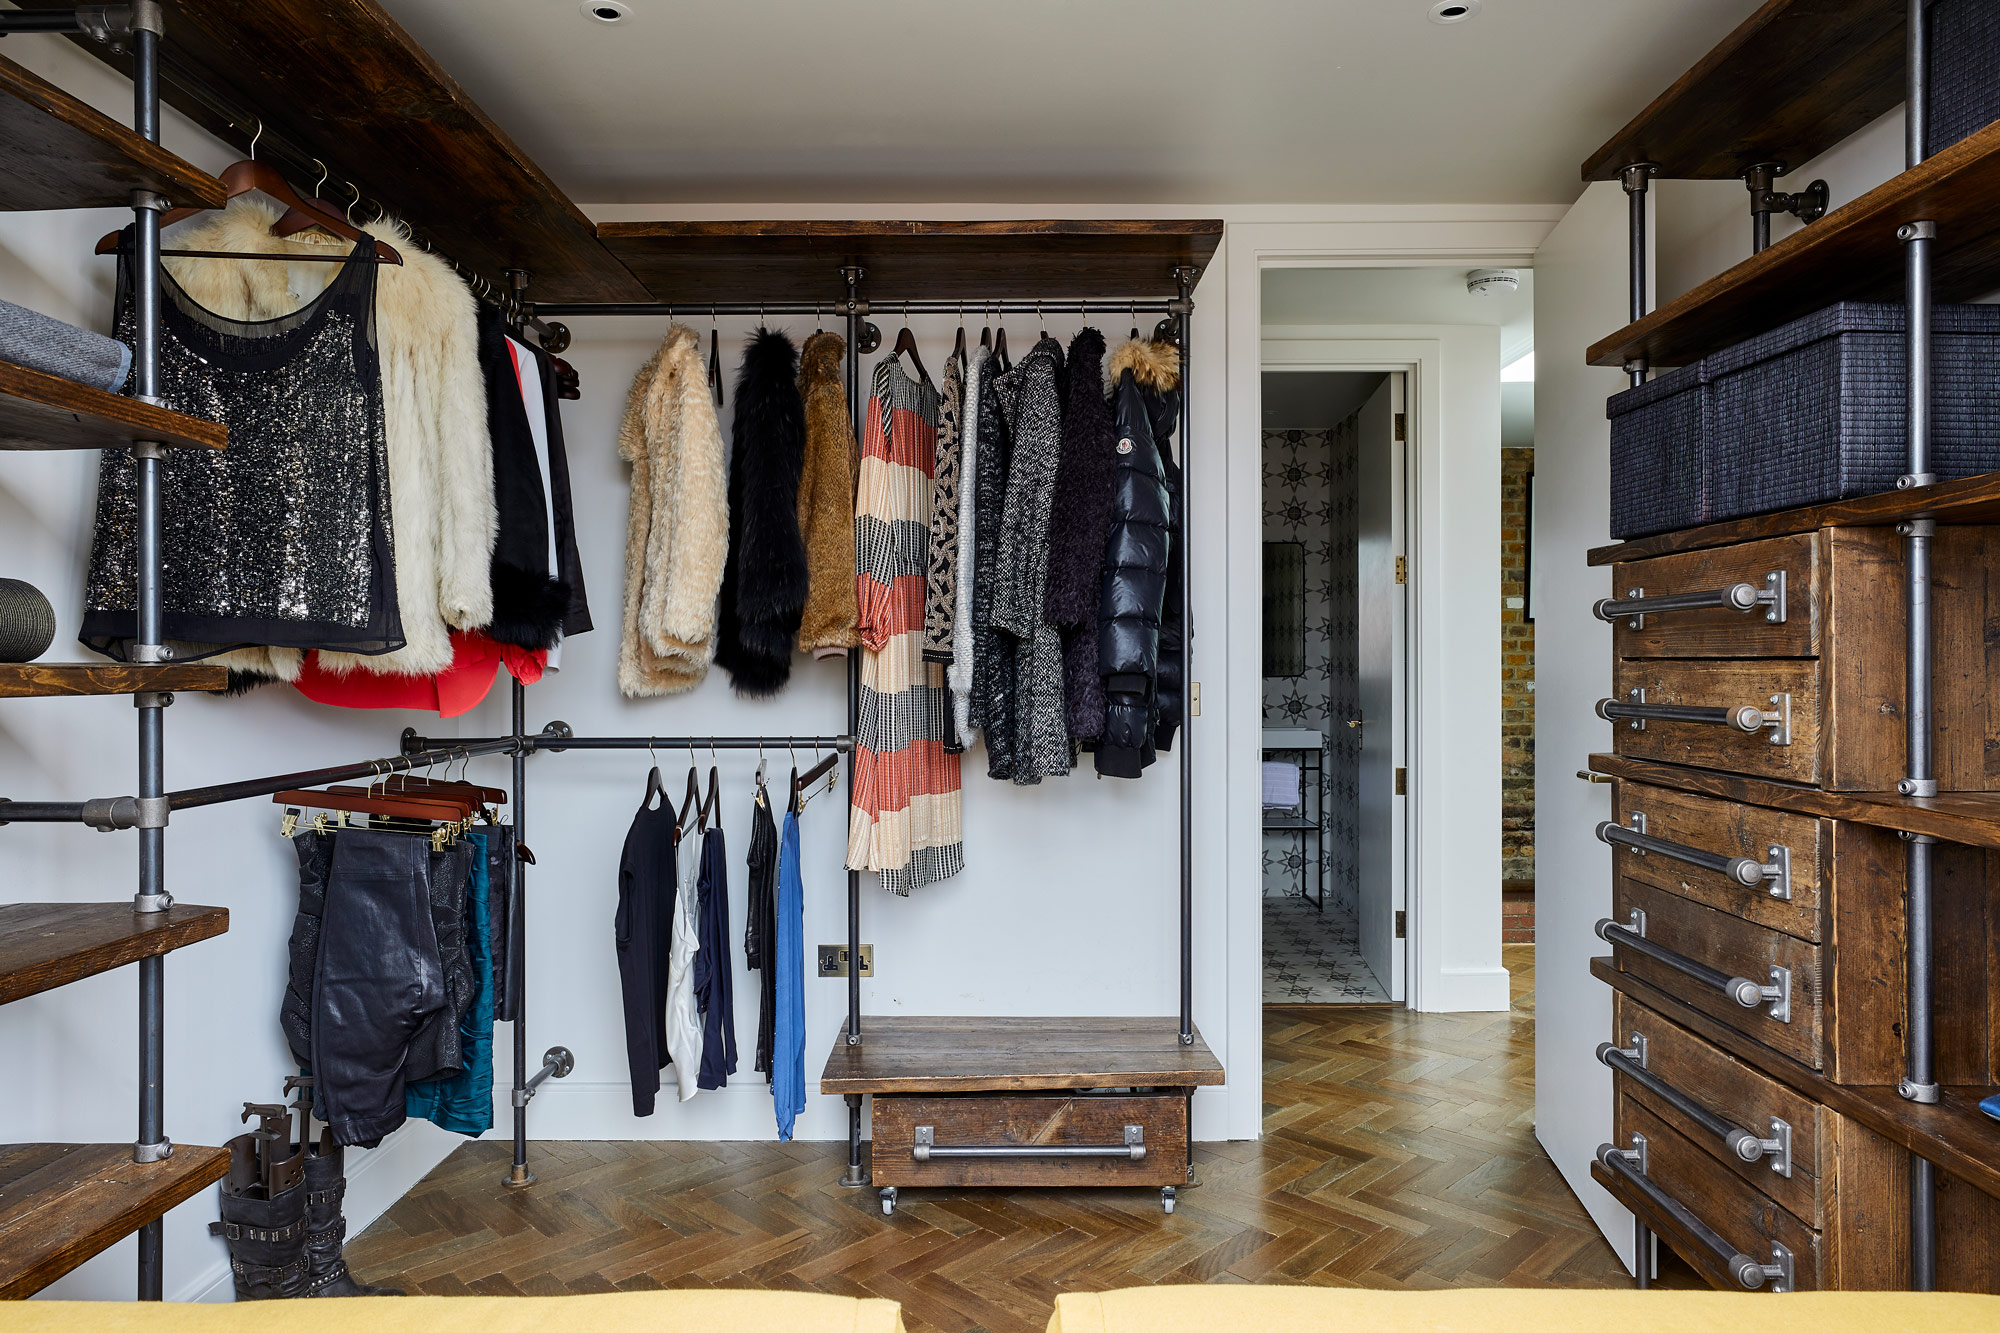 Open plan walk in wardrobe with rustic shelves and pipework